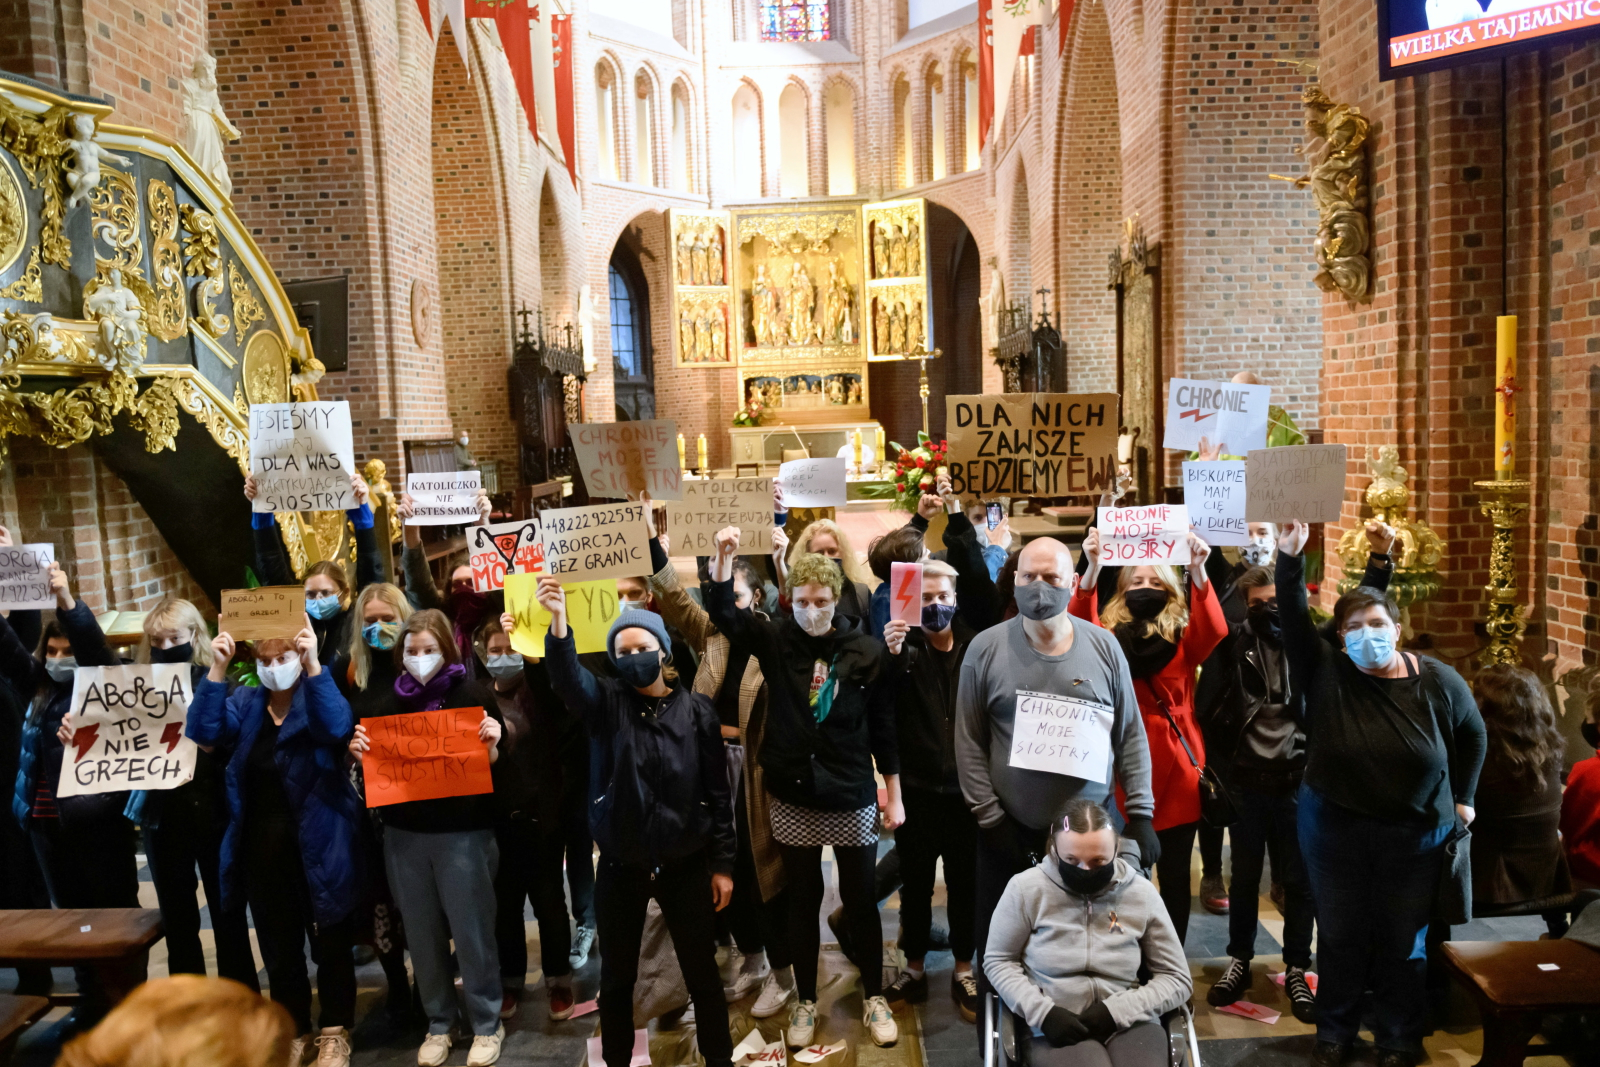 Representatives of the Women's Strike organization during a protest against the tightening of abortion laws in Poland at a cathedral in the western city of Poznań, October 25. Photo: PAP / Jakub Kaczmarczyk